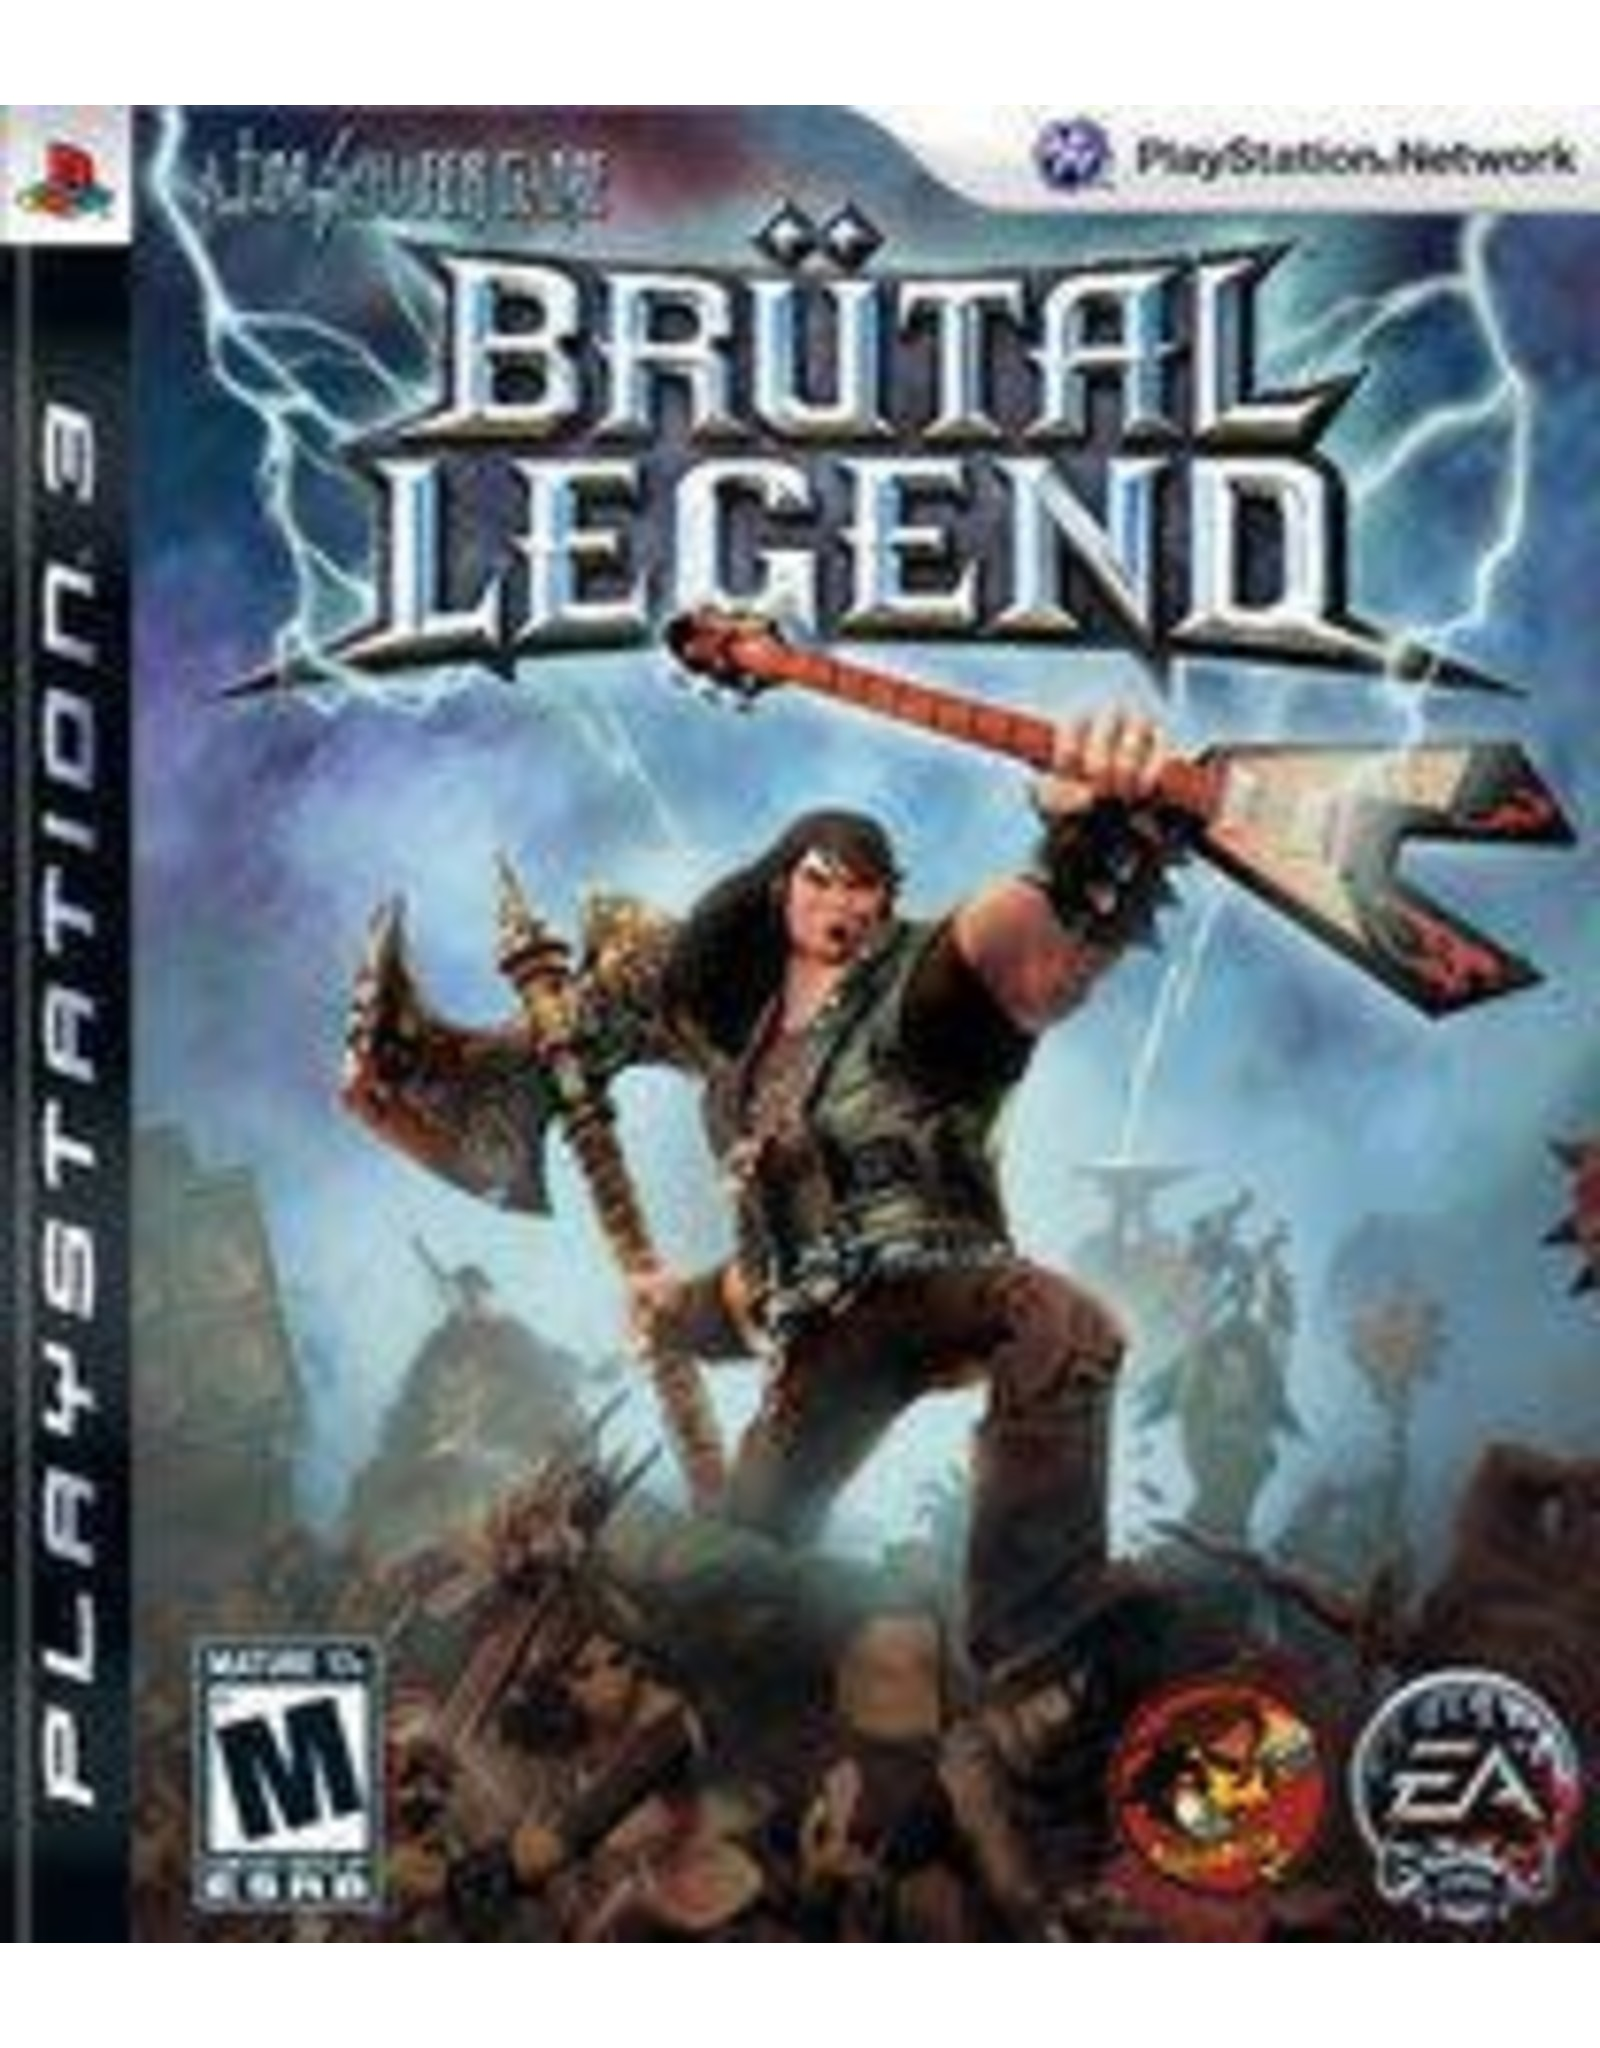 Playstation 3 Brutal Legend (CIB)